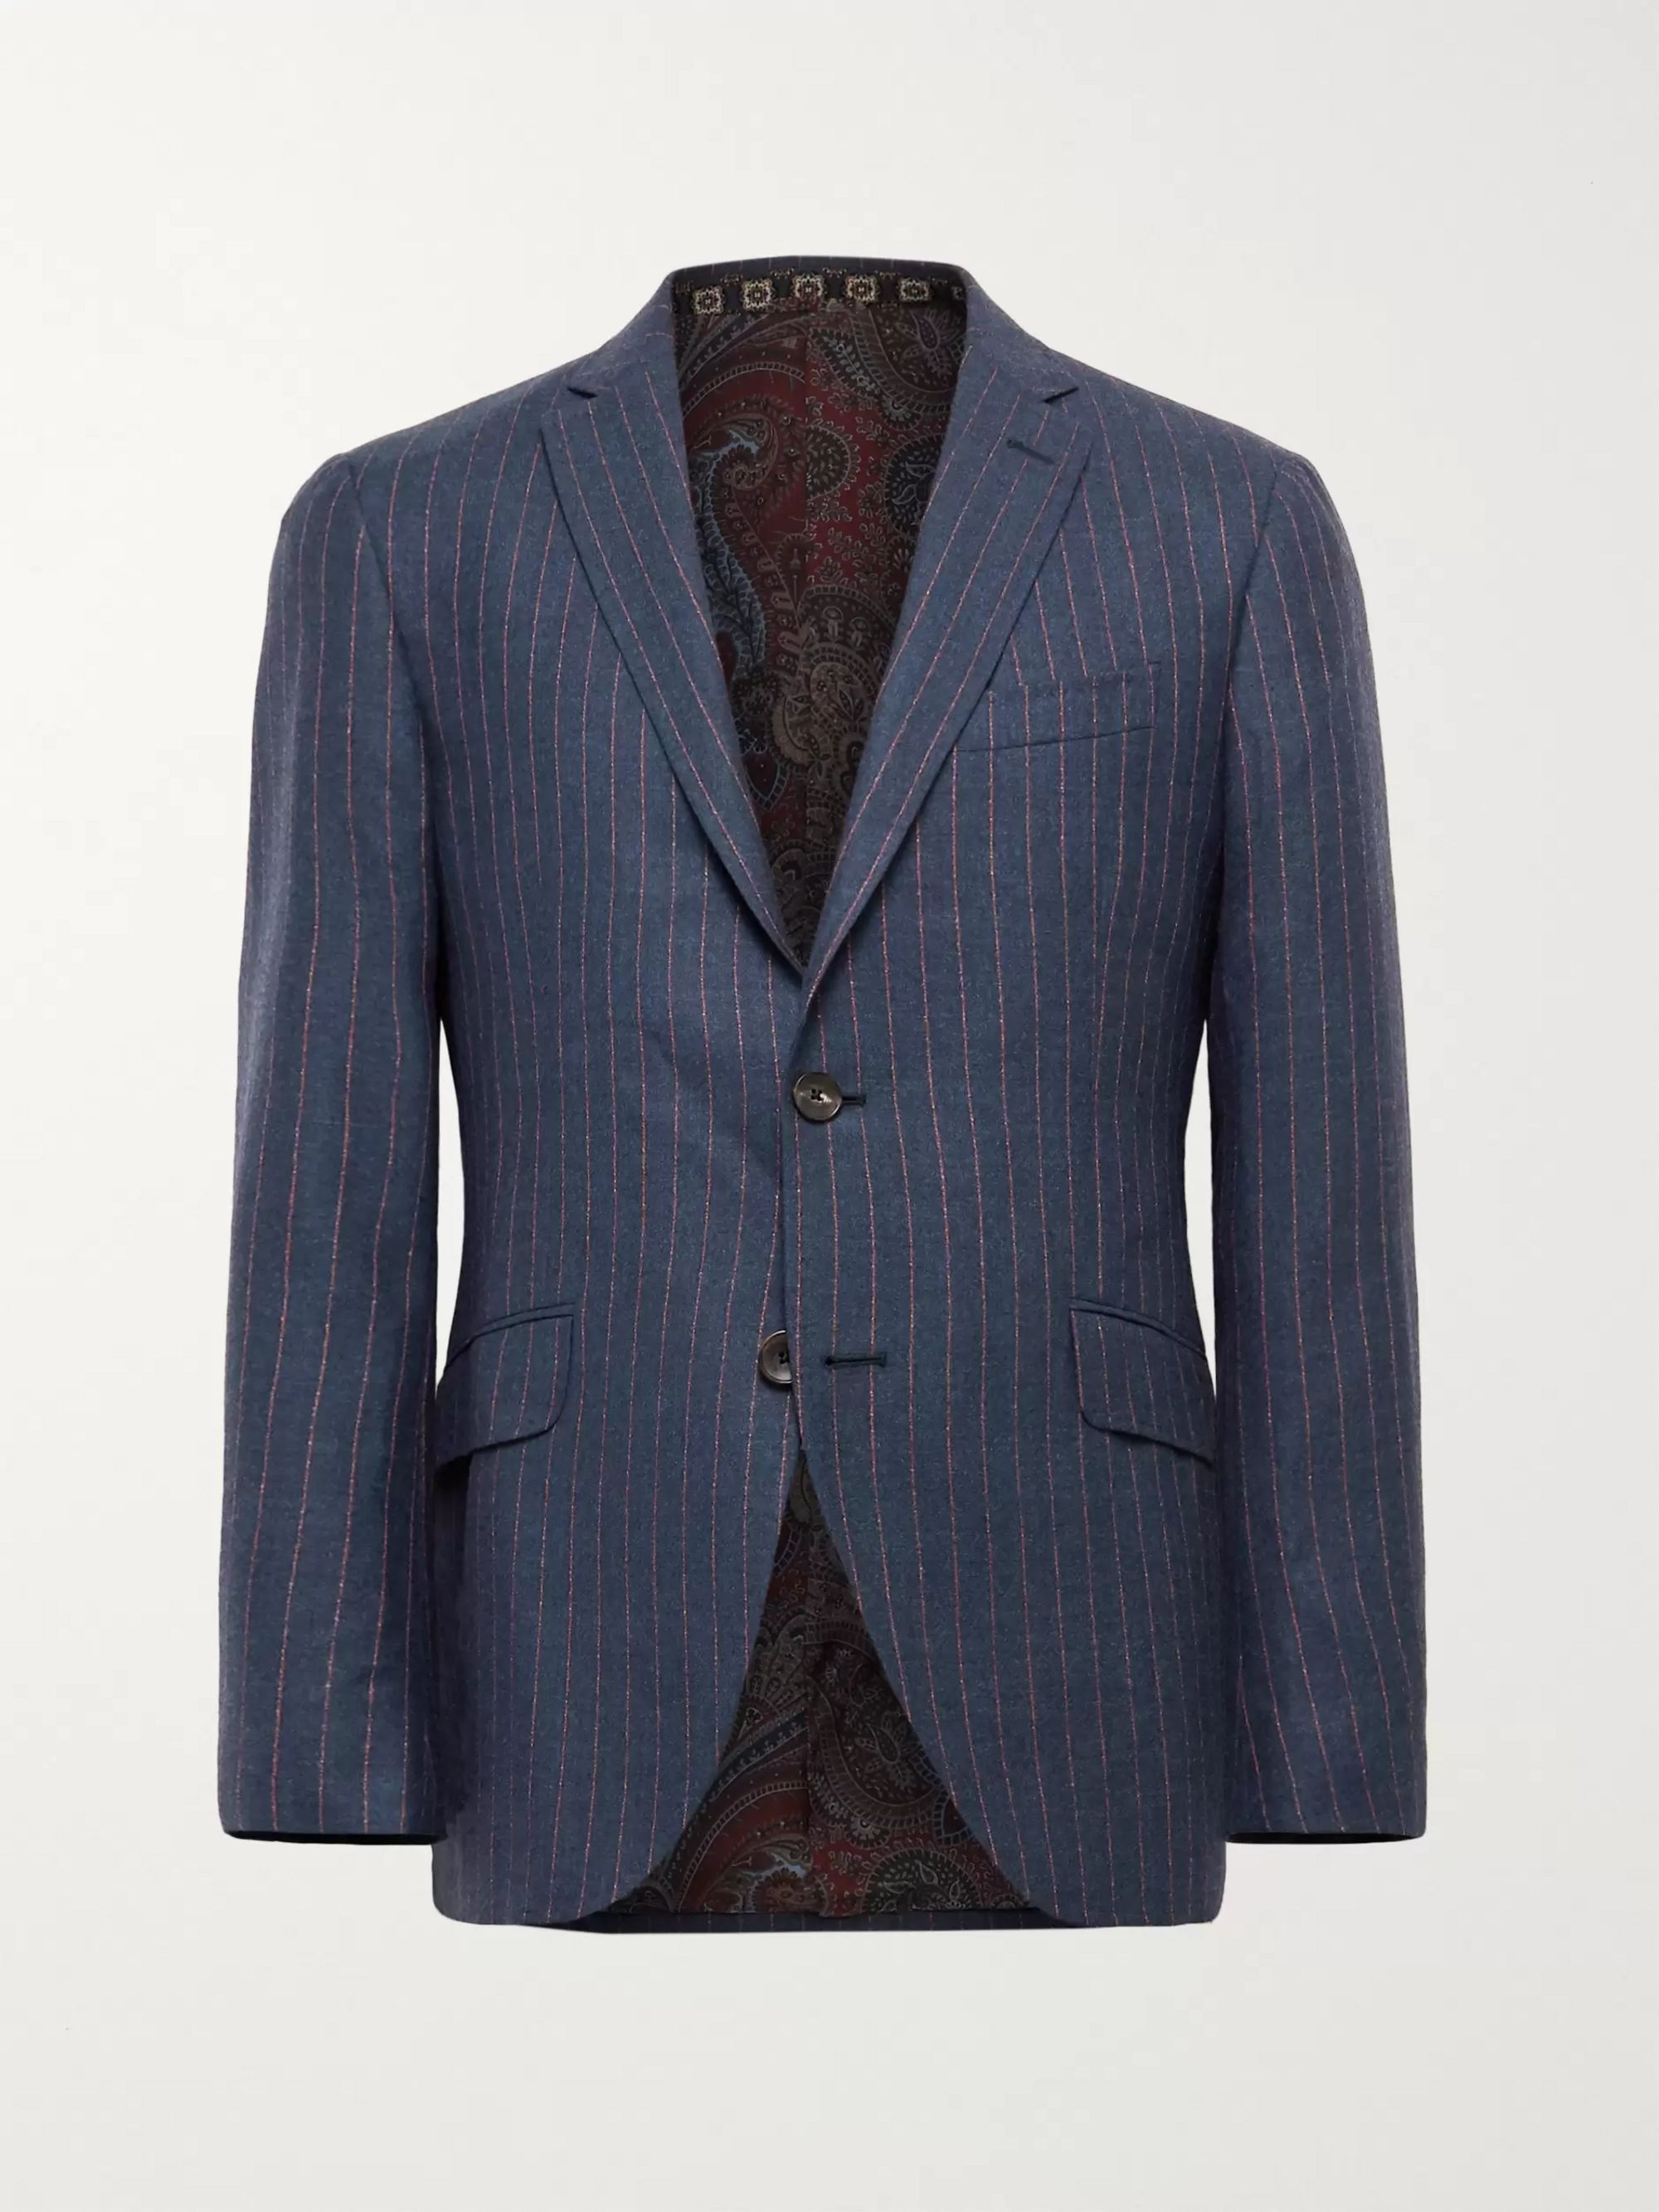 Etro Slim-Fit Unstructured Striped Wool, Cashmere, Silk and Cotton-Blend Suit Jacket